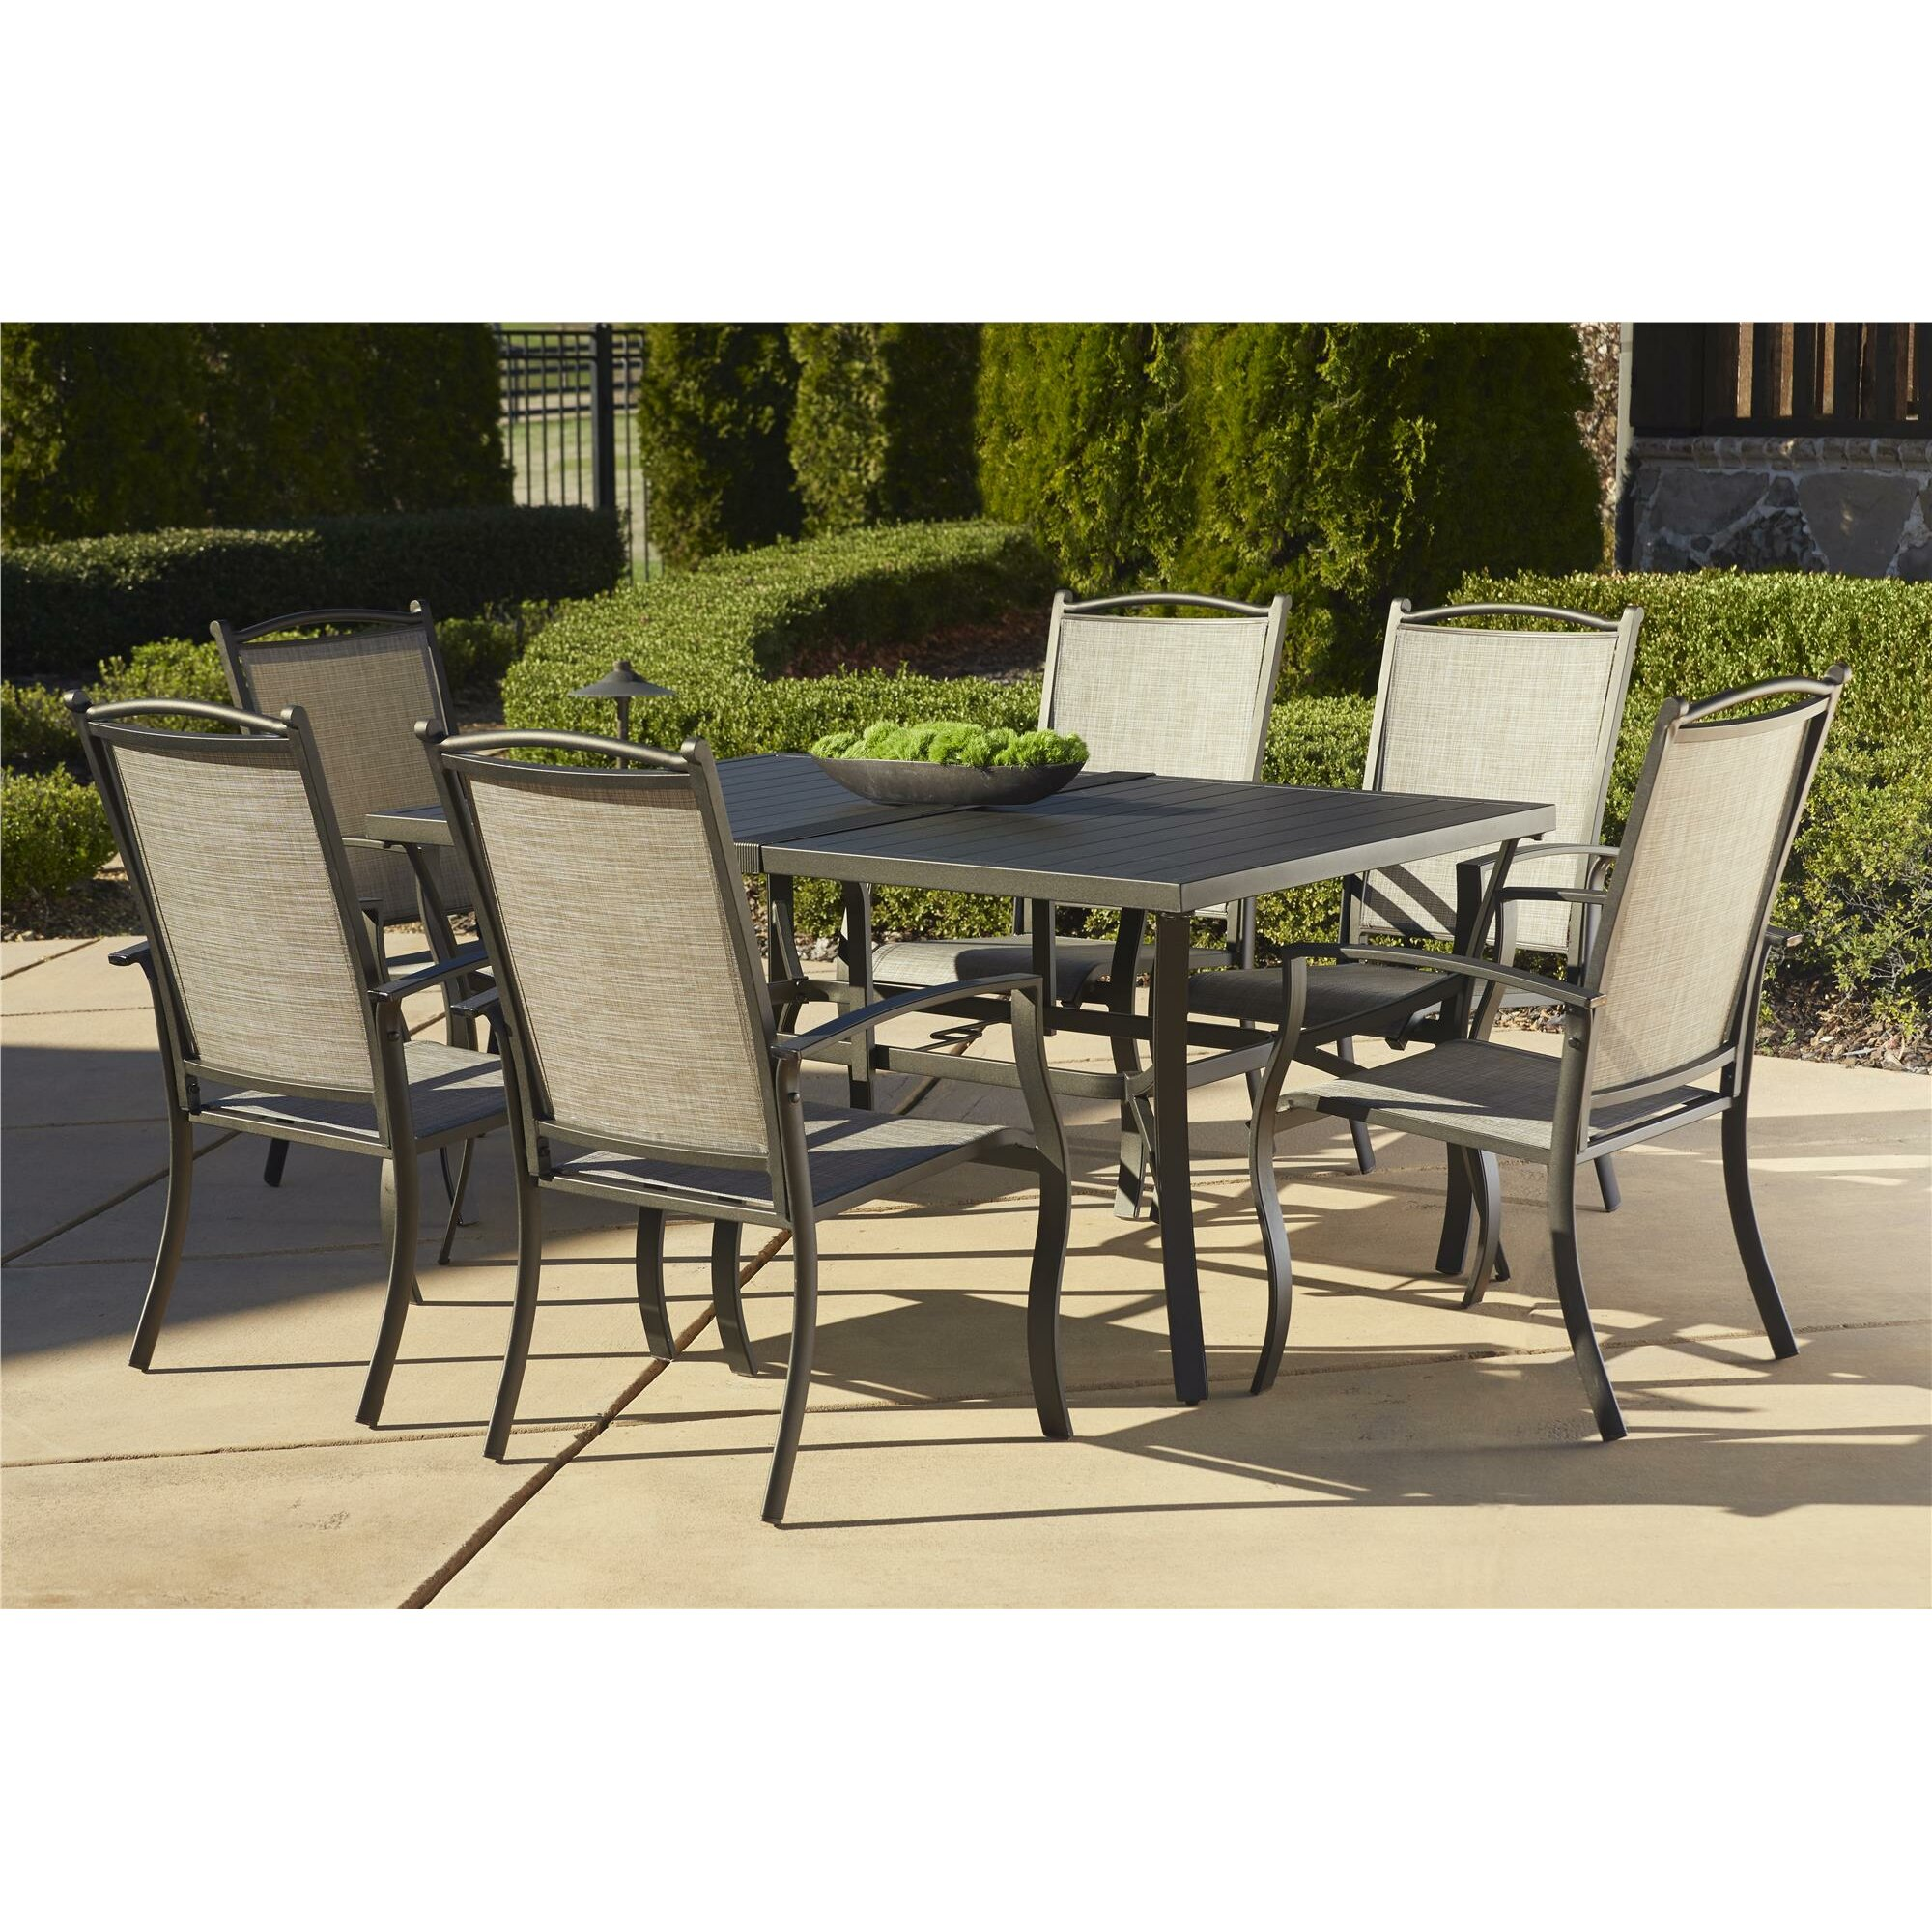 Three posts pavilion 7 piece dining set reviews wayfair for Patio furniture sets